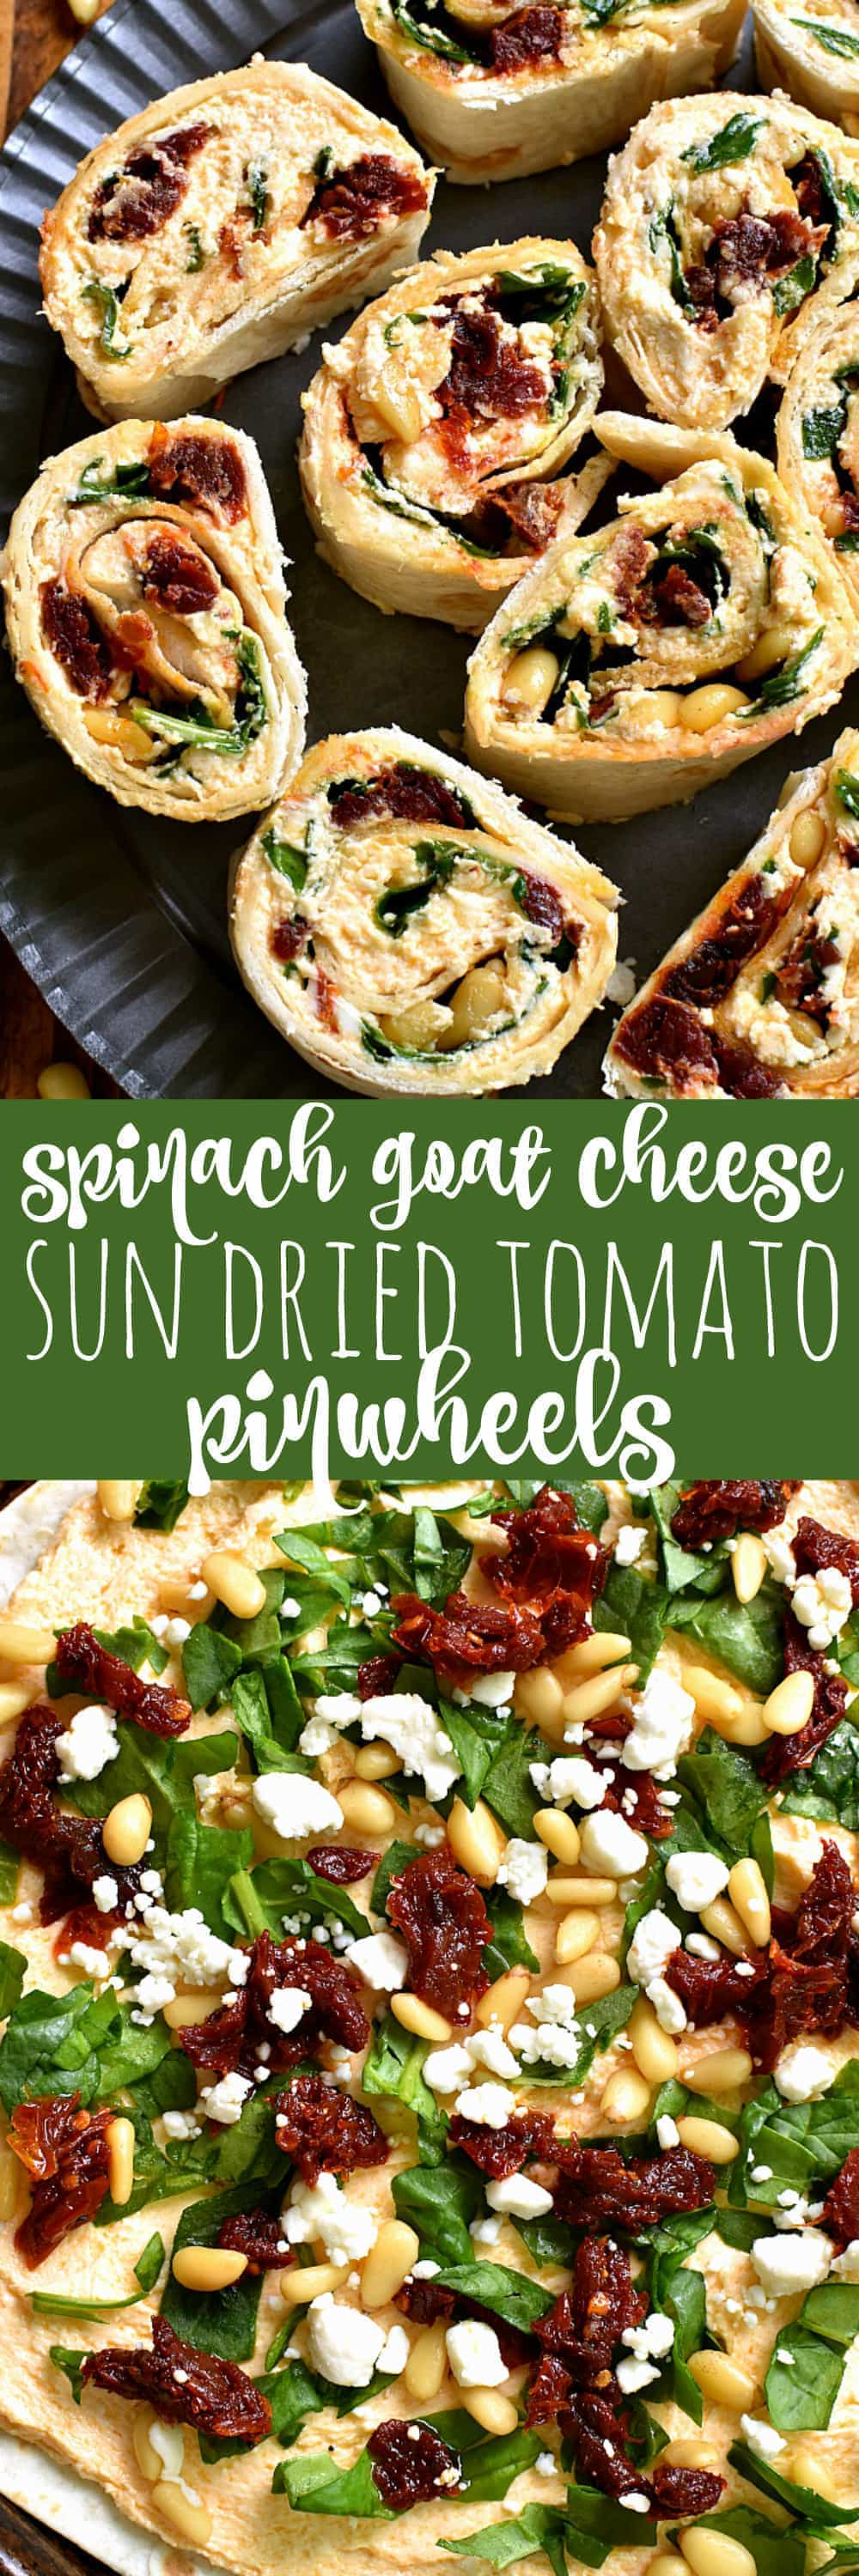 These Spinach Goat Cheese Sun Dried Tomato Pinwheels are the perfect appetizer! Packed with delicious flavor and SO easy to make, they're ideal for cocktail parties, picnics, ladies nights, or even dinner!